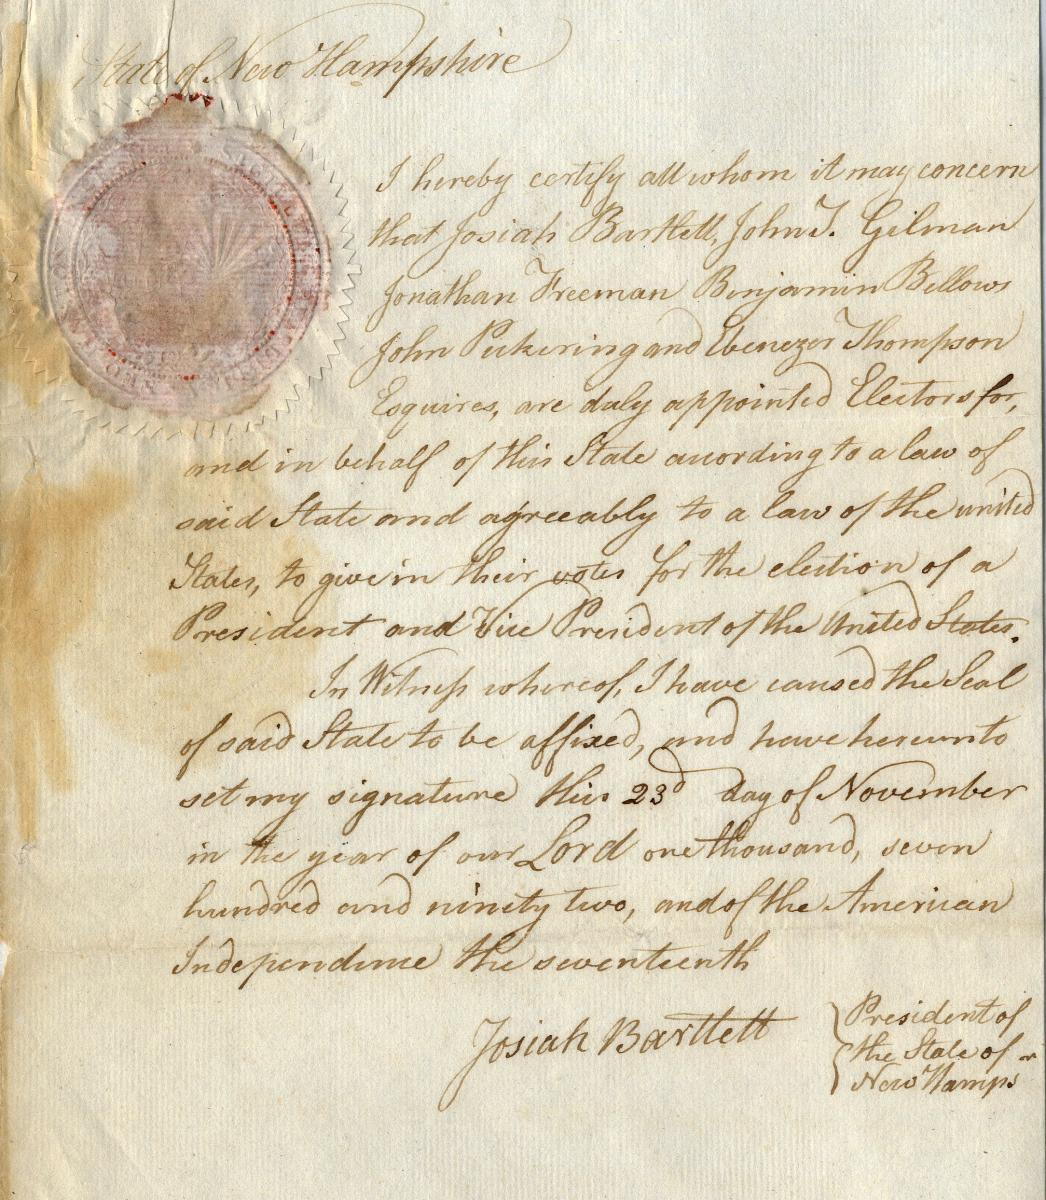 1792 New Hampshire electors certificate of ascertainment